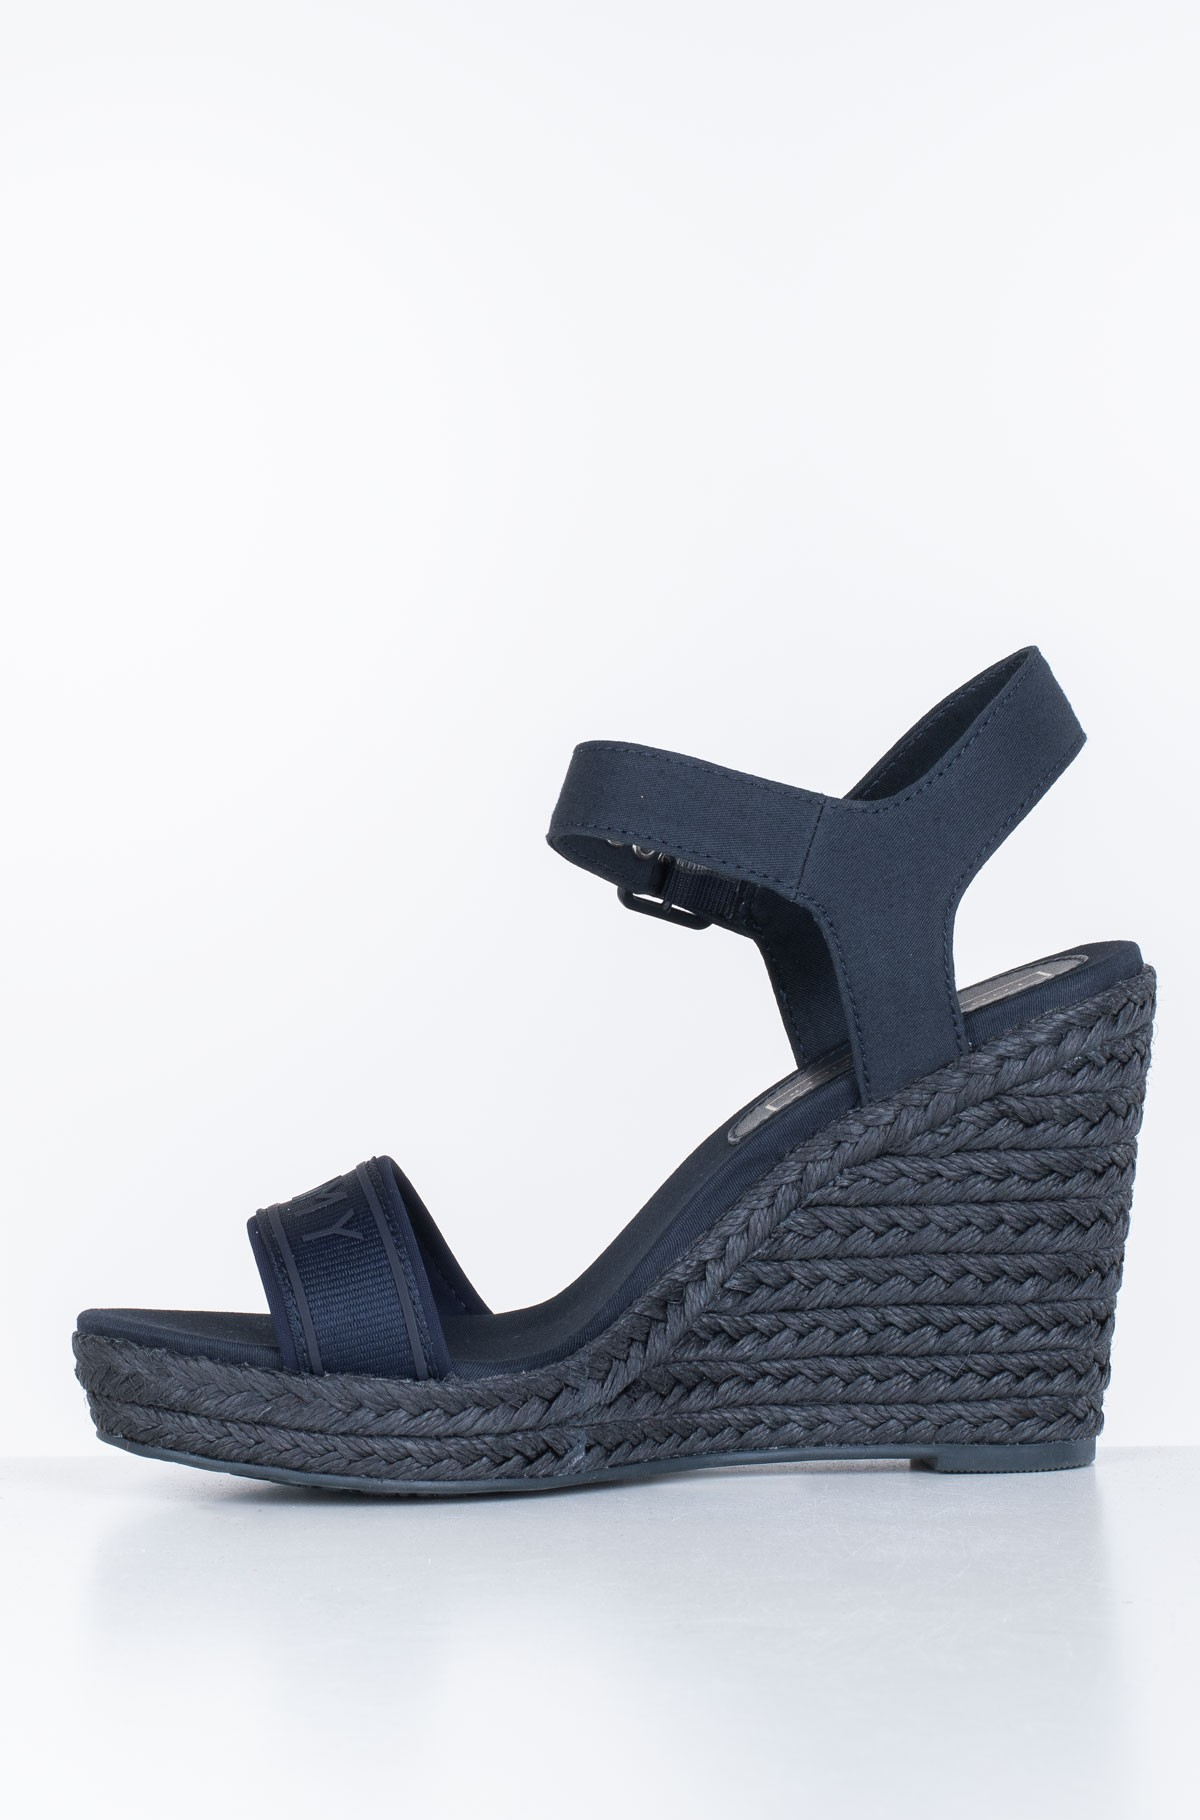 Batai su platforma COLORFUL TOMMY WEDGE SANDAL-full-2